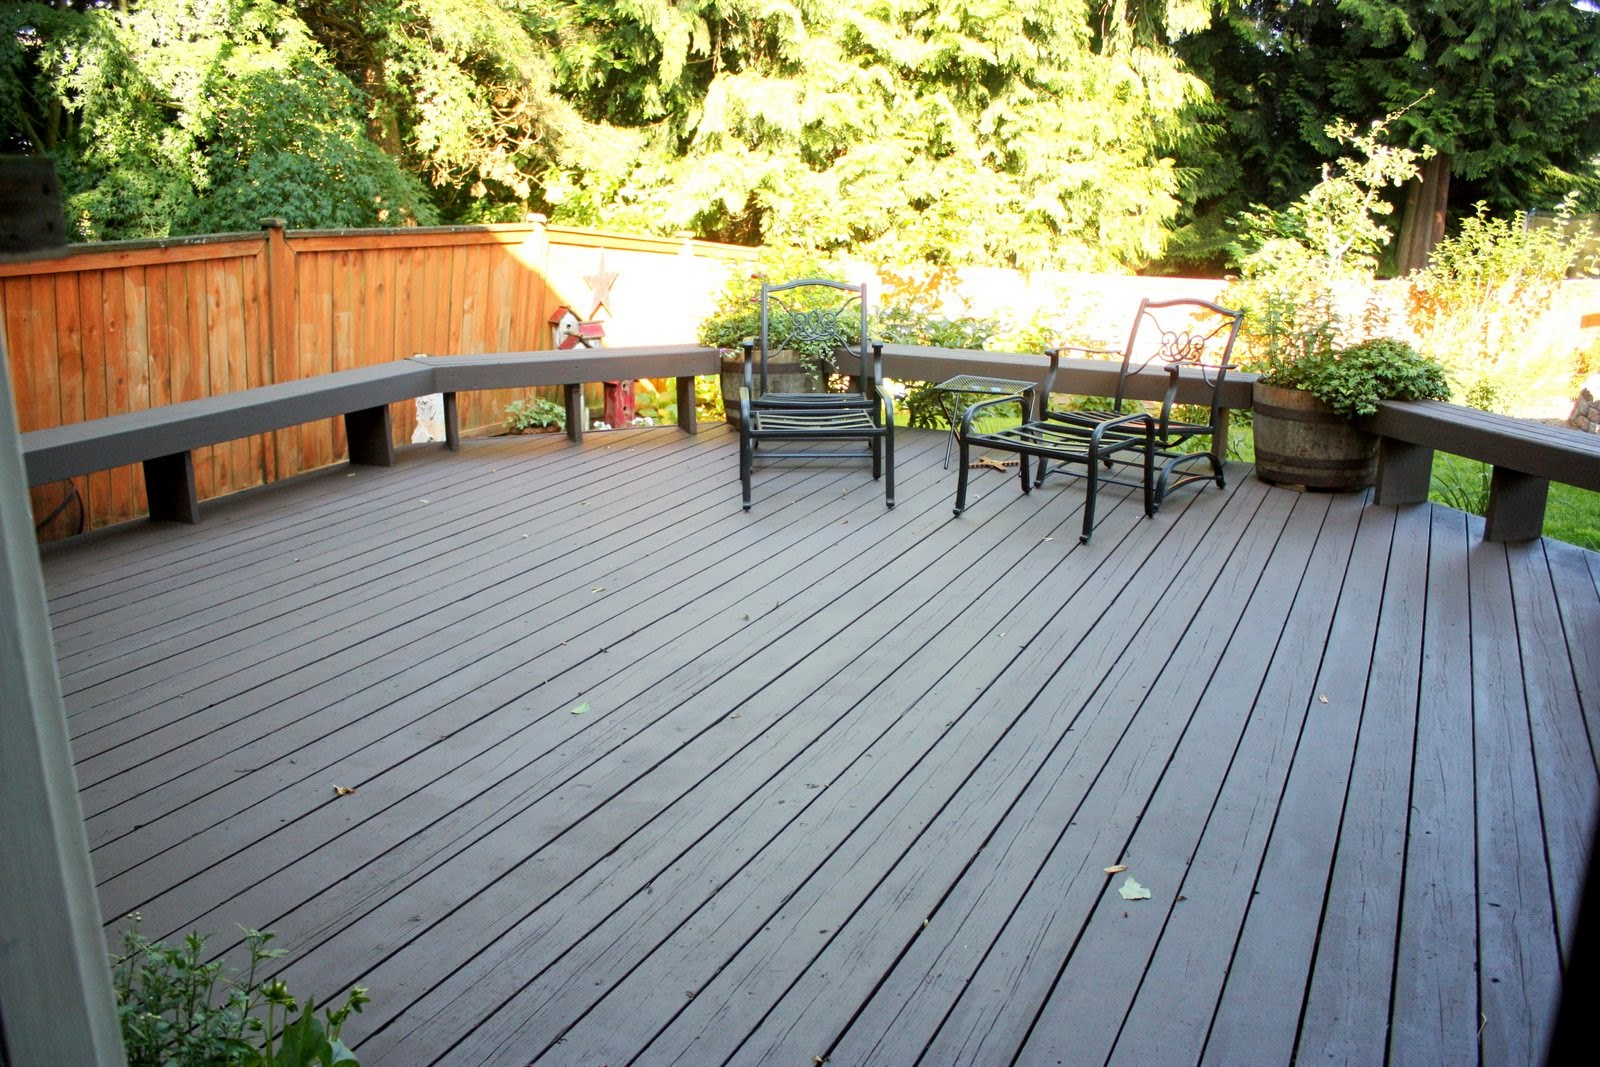 Deck Paint That Covers Splinters | Where to Buy Behr Deckover | Behr Deck Over